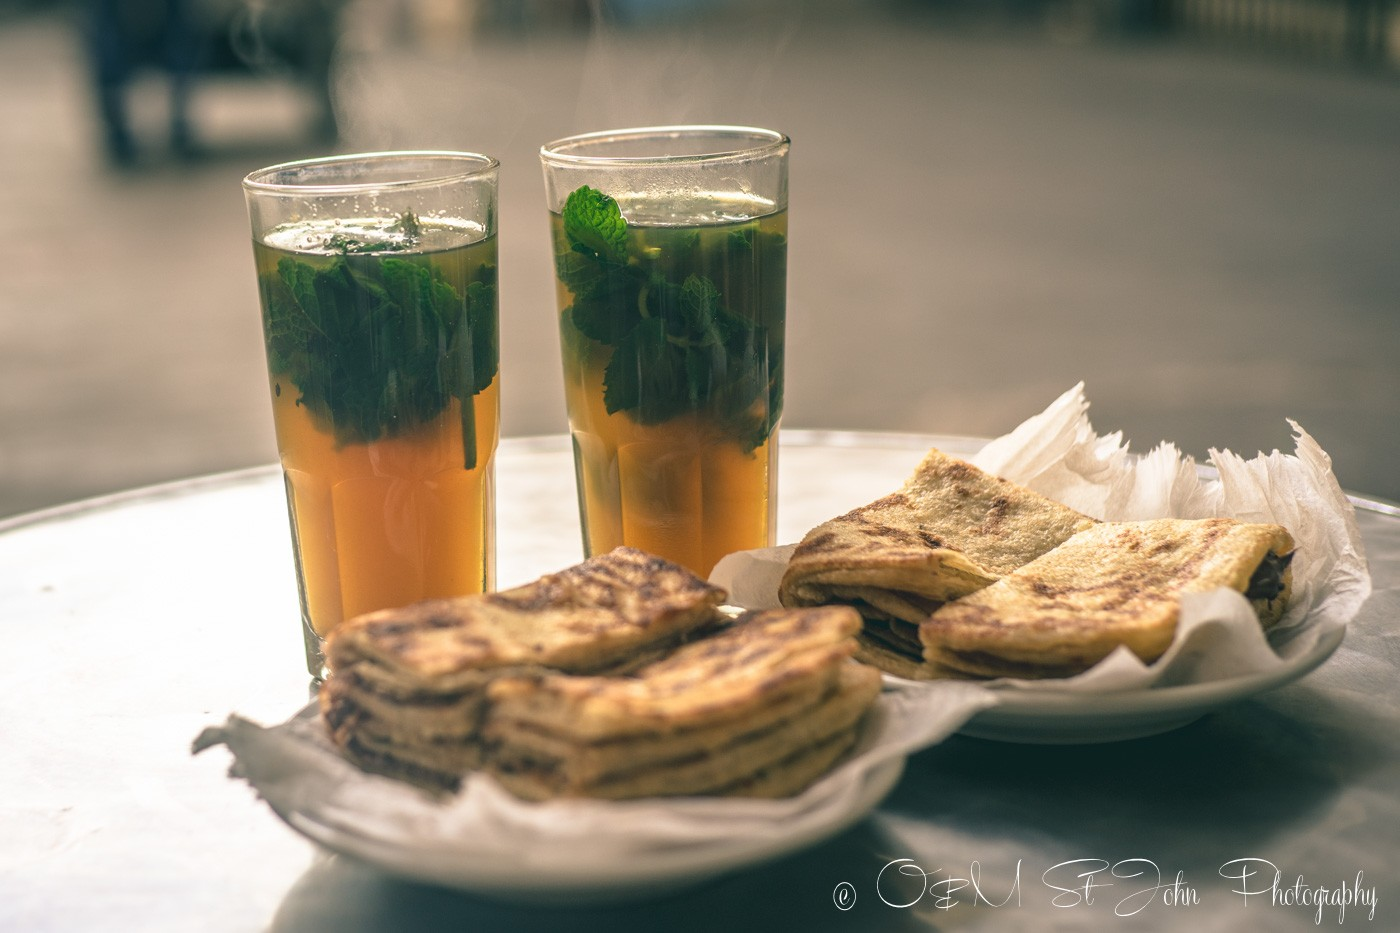 Moroccan food: Moroccan mint tea and pastry